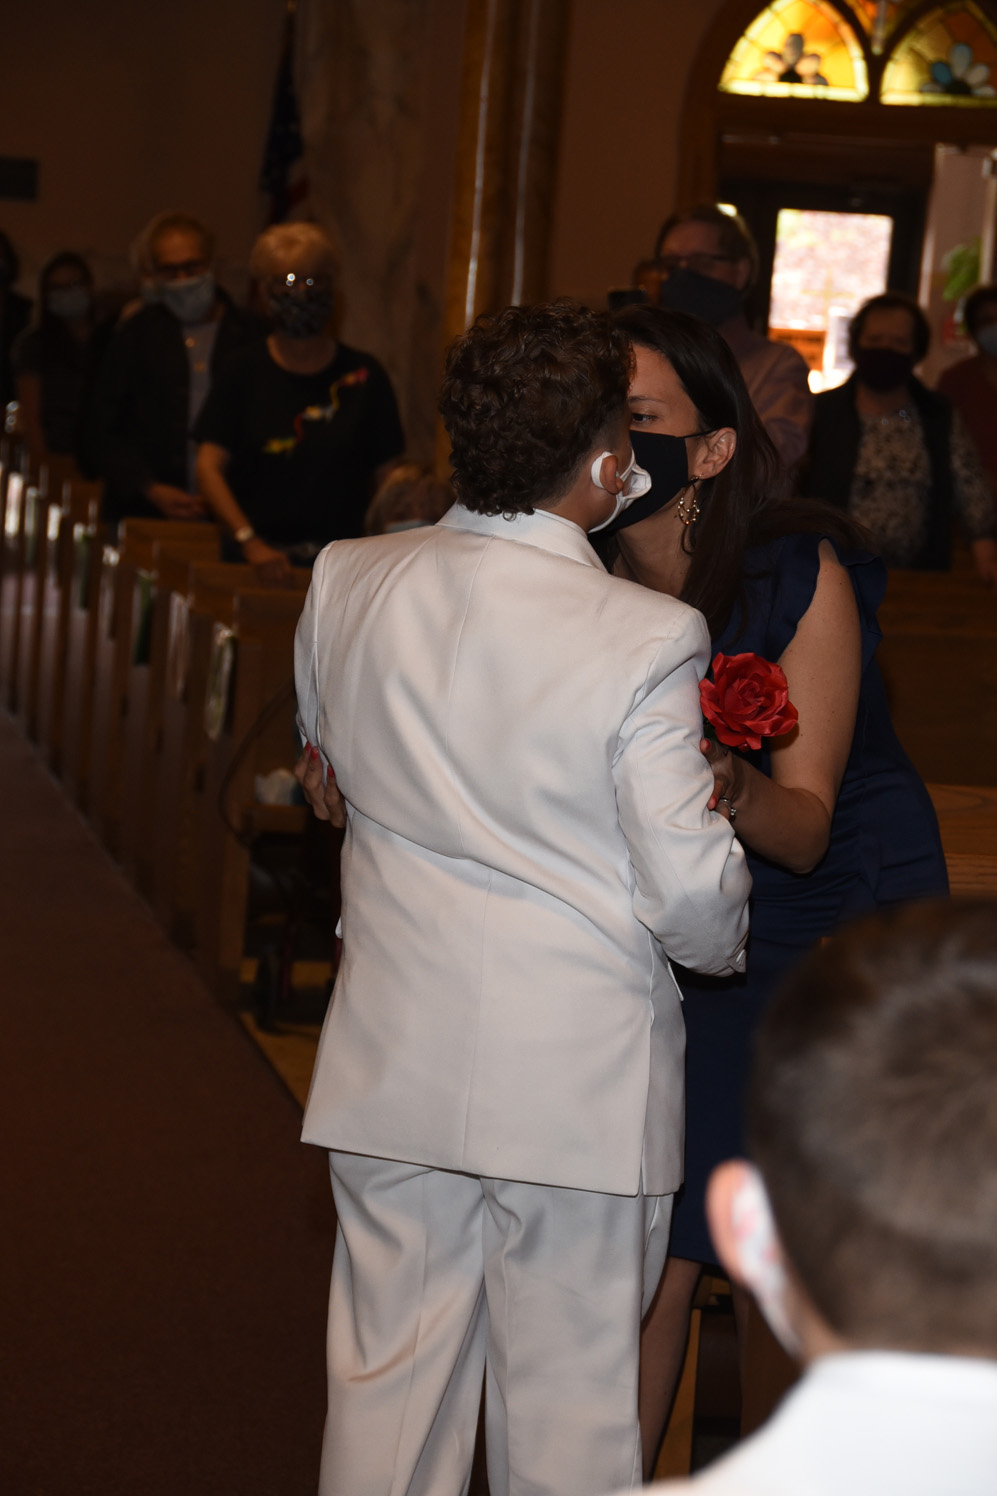 FIRST-COMMUNION-MAY-15-2021-10011107